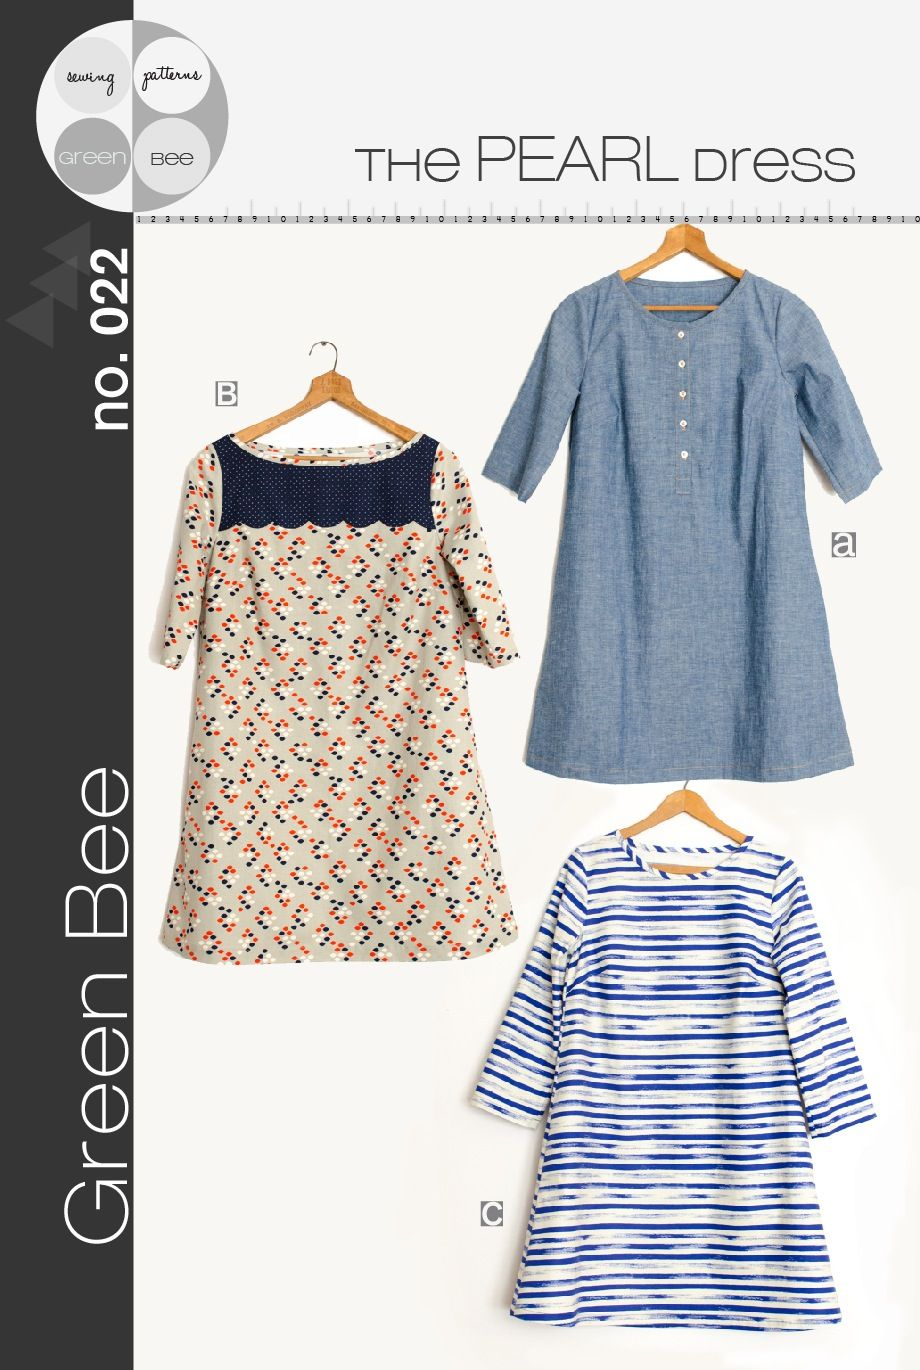 Pearl Dress Pattern by Green Bee - the scalloped yoke would be a ...